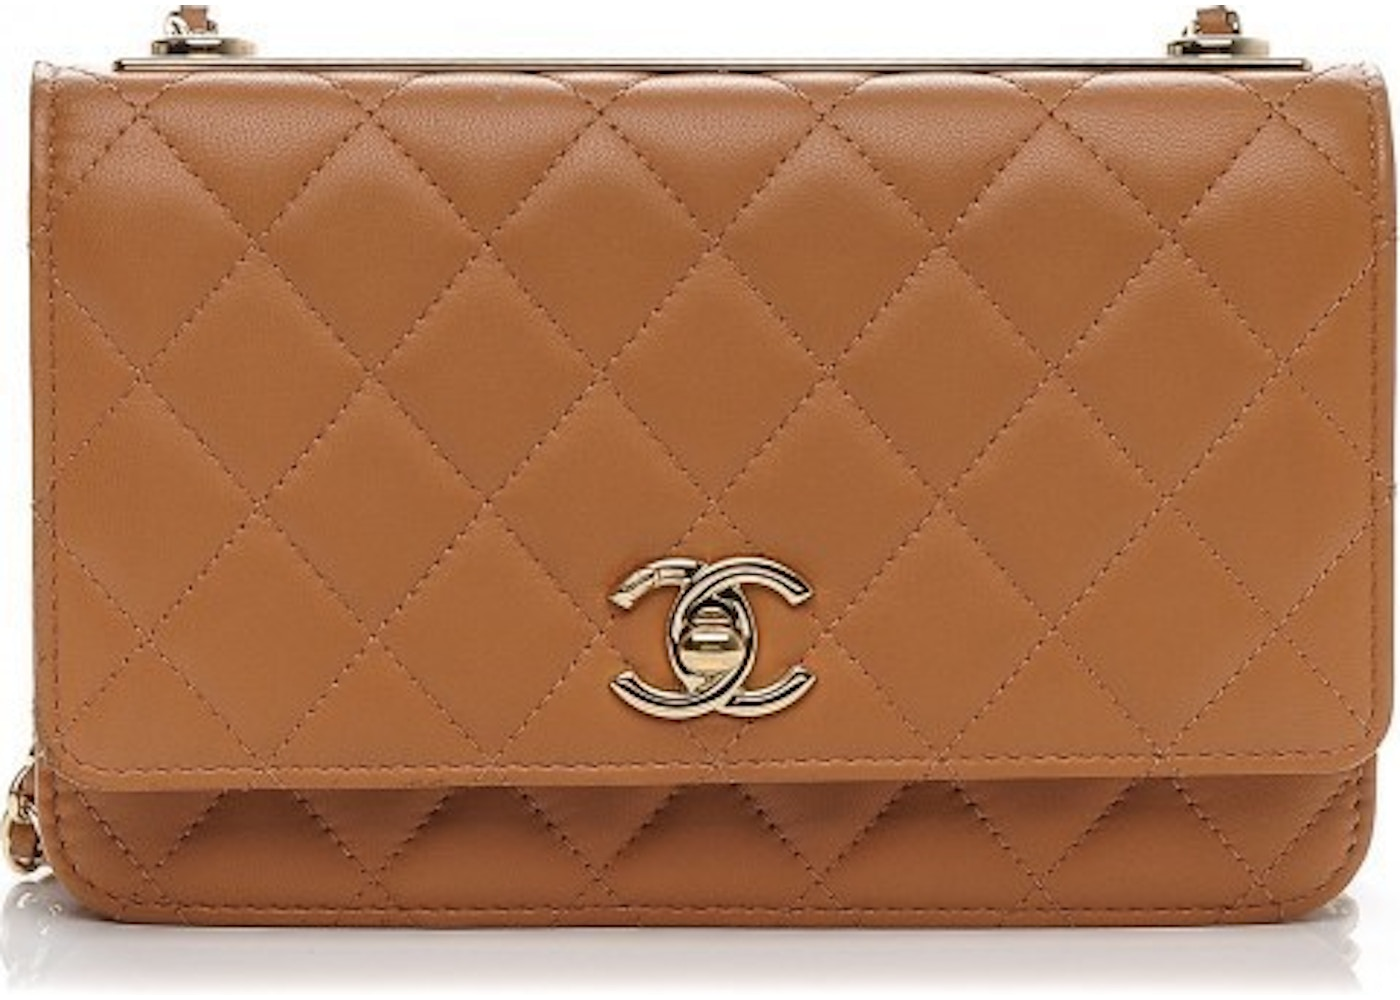 19016f4ac920 Chanel Trendy CC Wallet On Chain Diamond Quilted Camel. Diamond Quilted  Camel